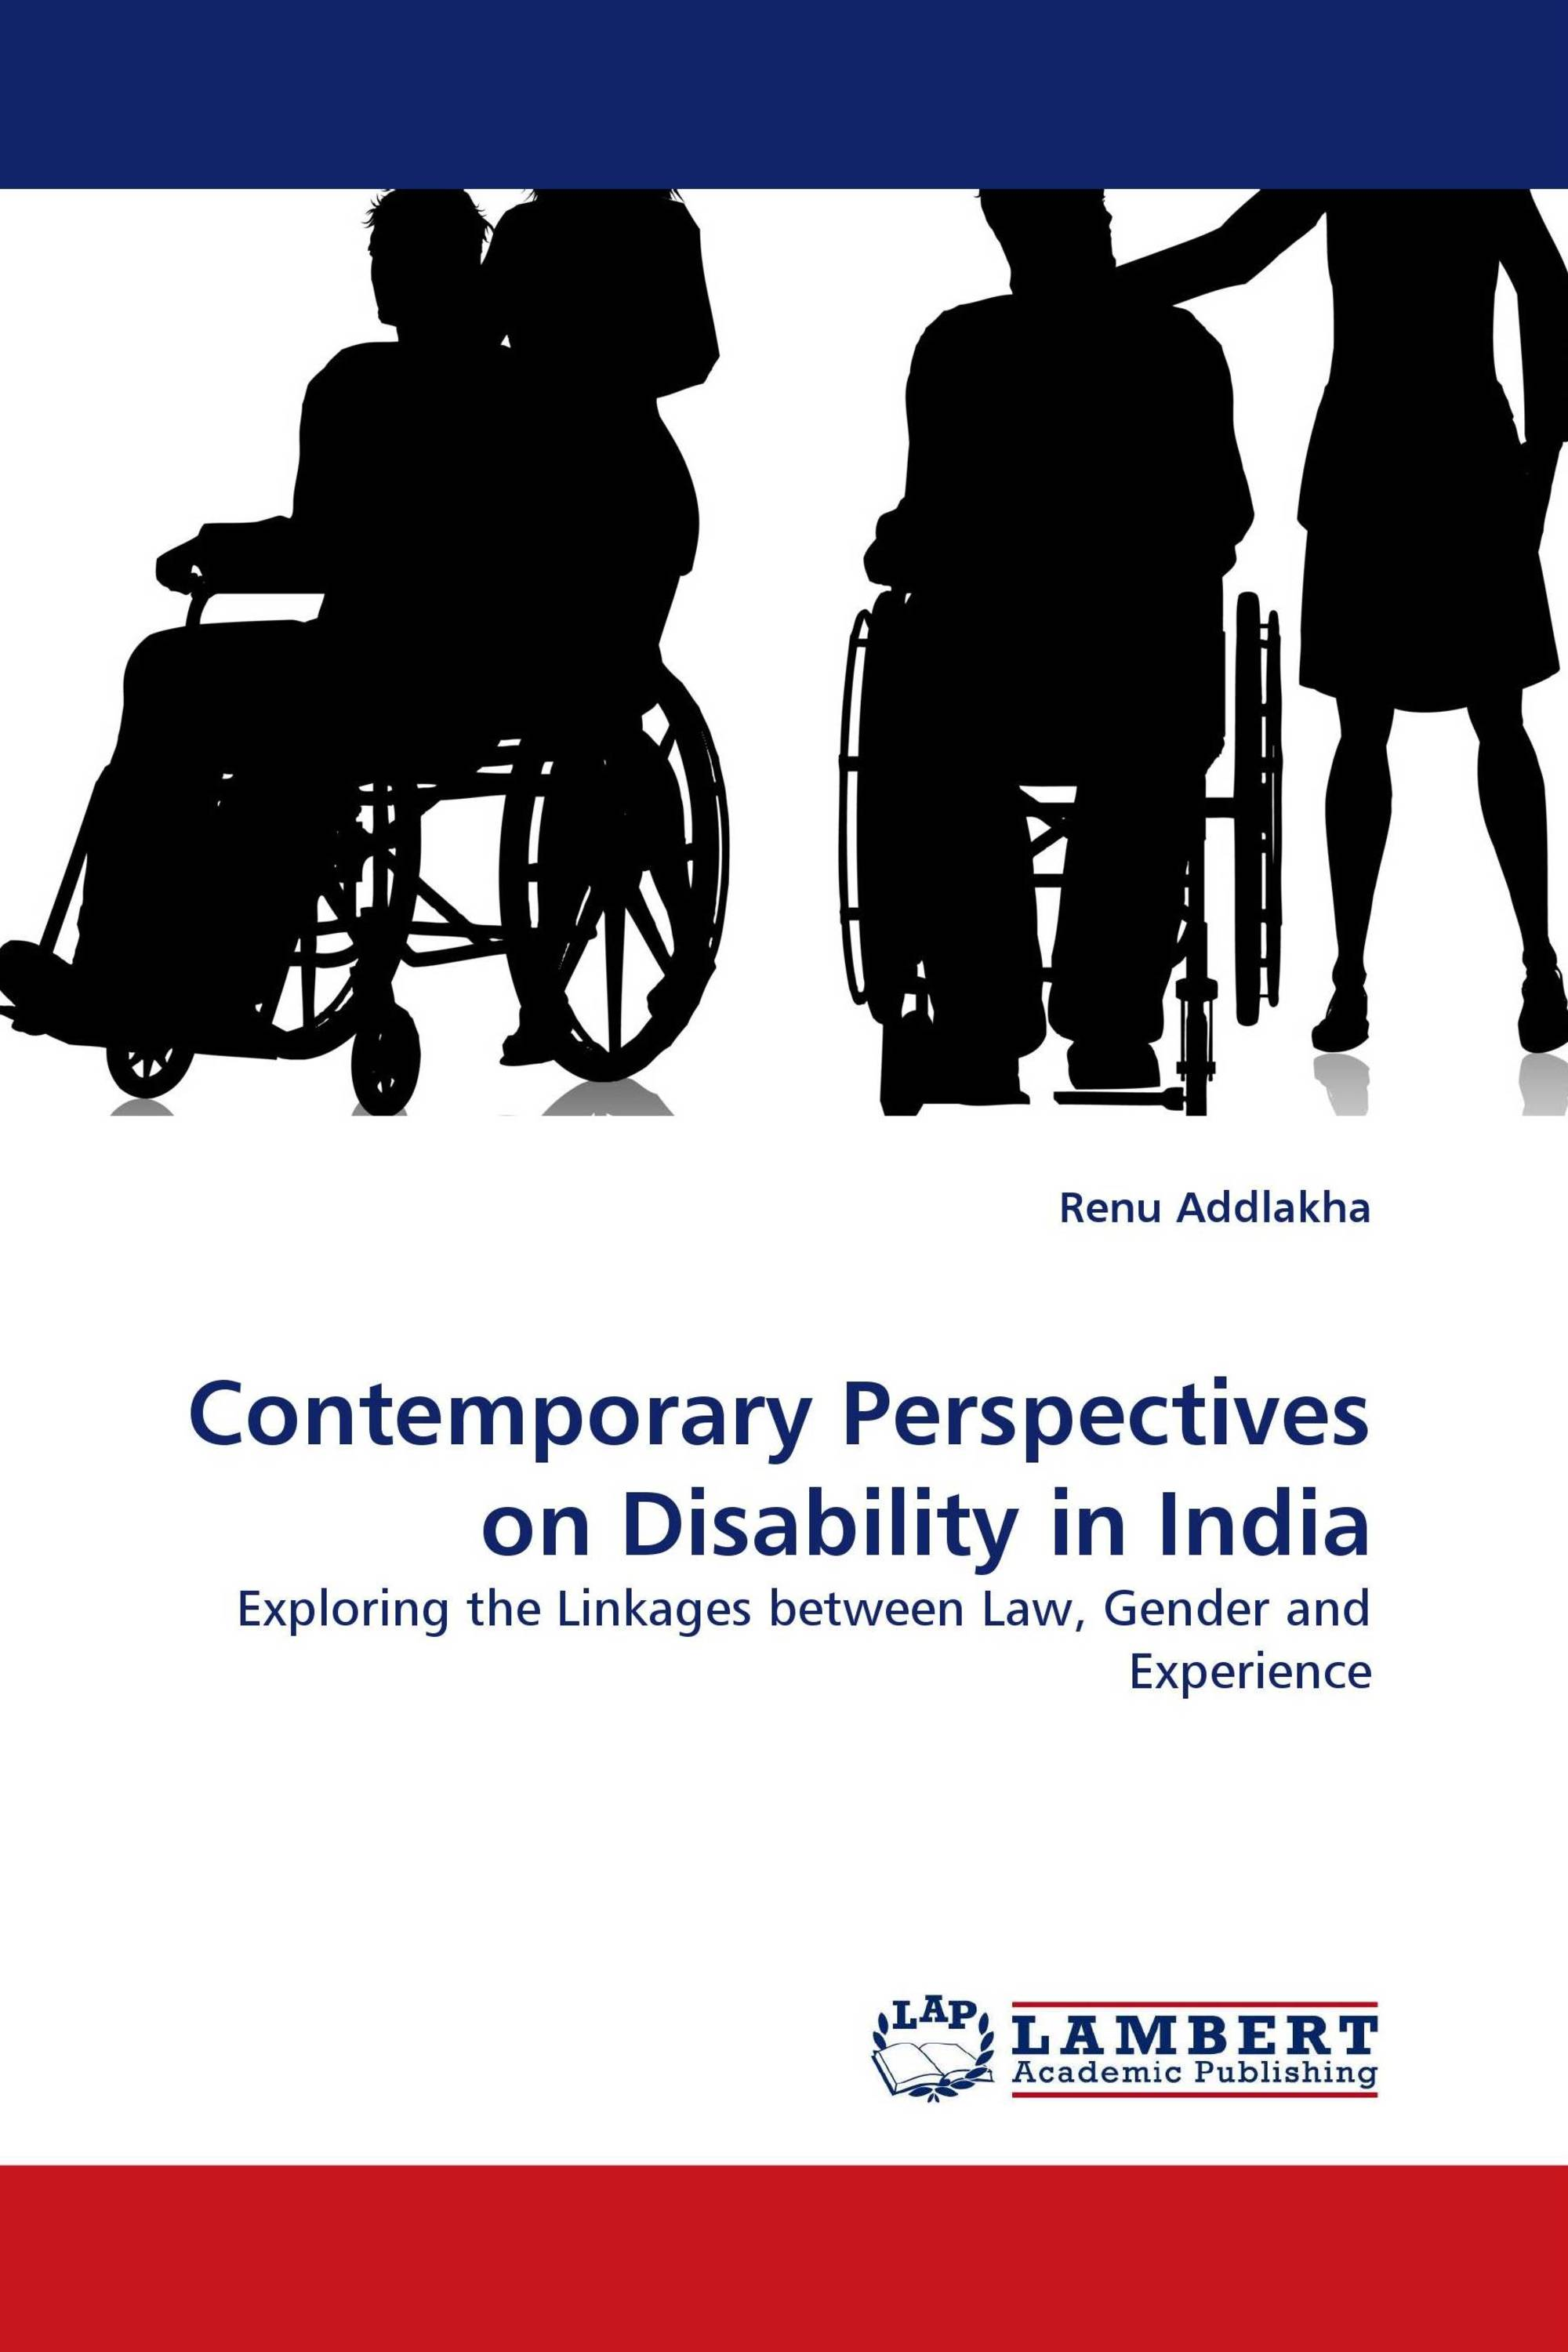 Thesis on disability in india